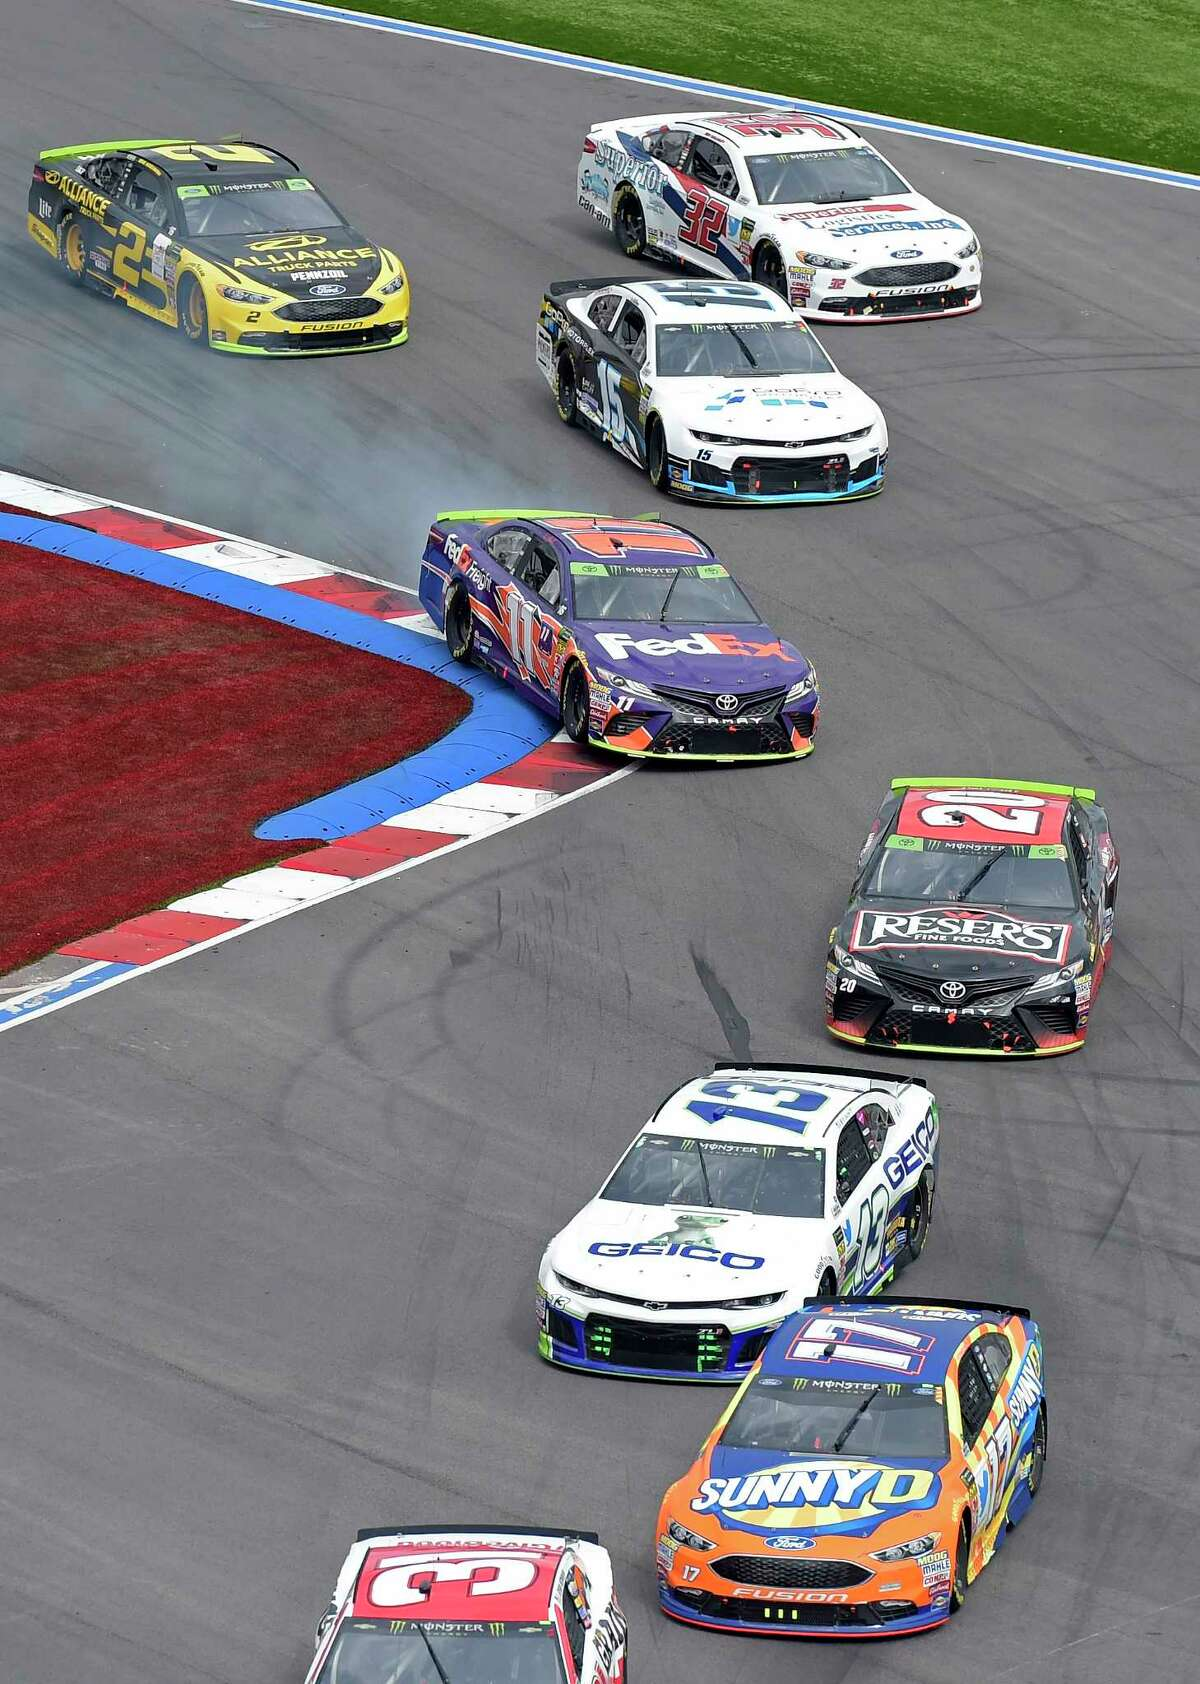 Denny Hamlin (11) runs over the rumble strips in Turn 16 during the NASCAR Cup series auto race at Charlotte Motor Speedway in Concord, N.C., Sunday, Sept. 30, 2018. (AP Photo/Mike McCarn)